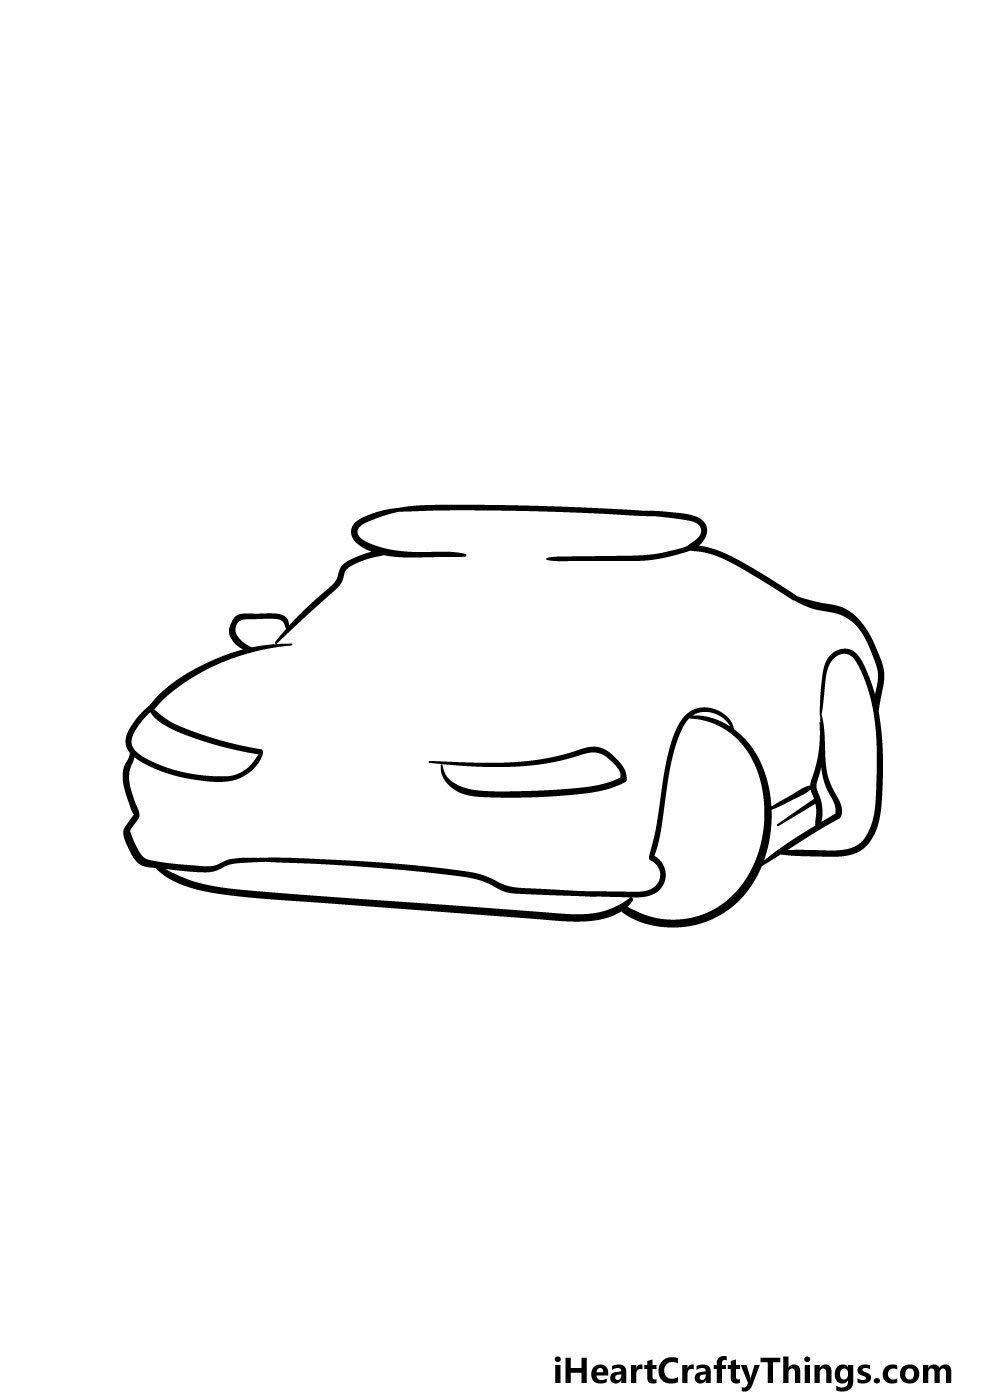 drawing a police car step 2